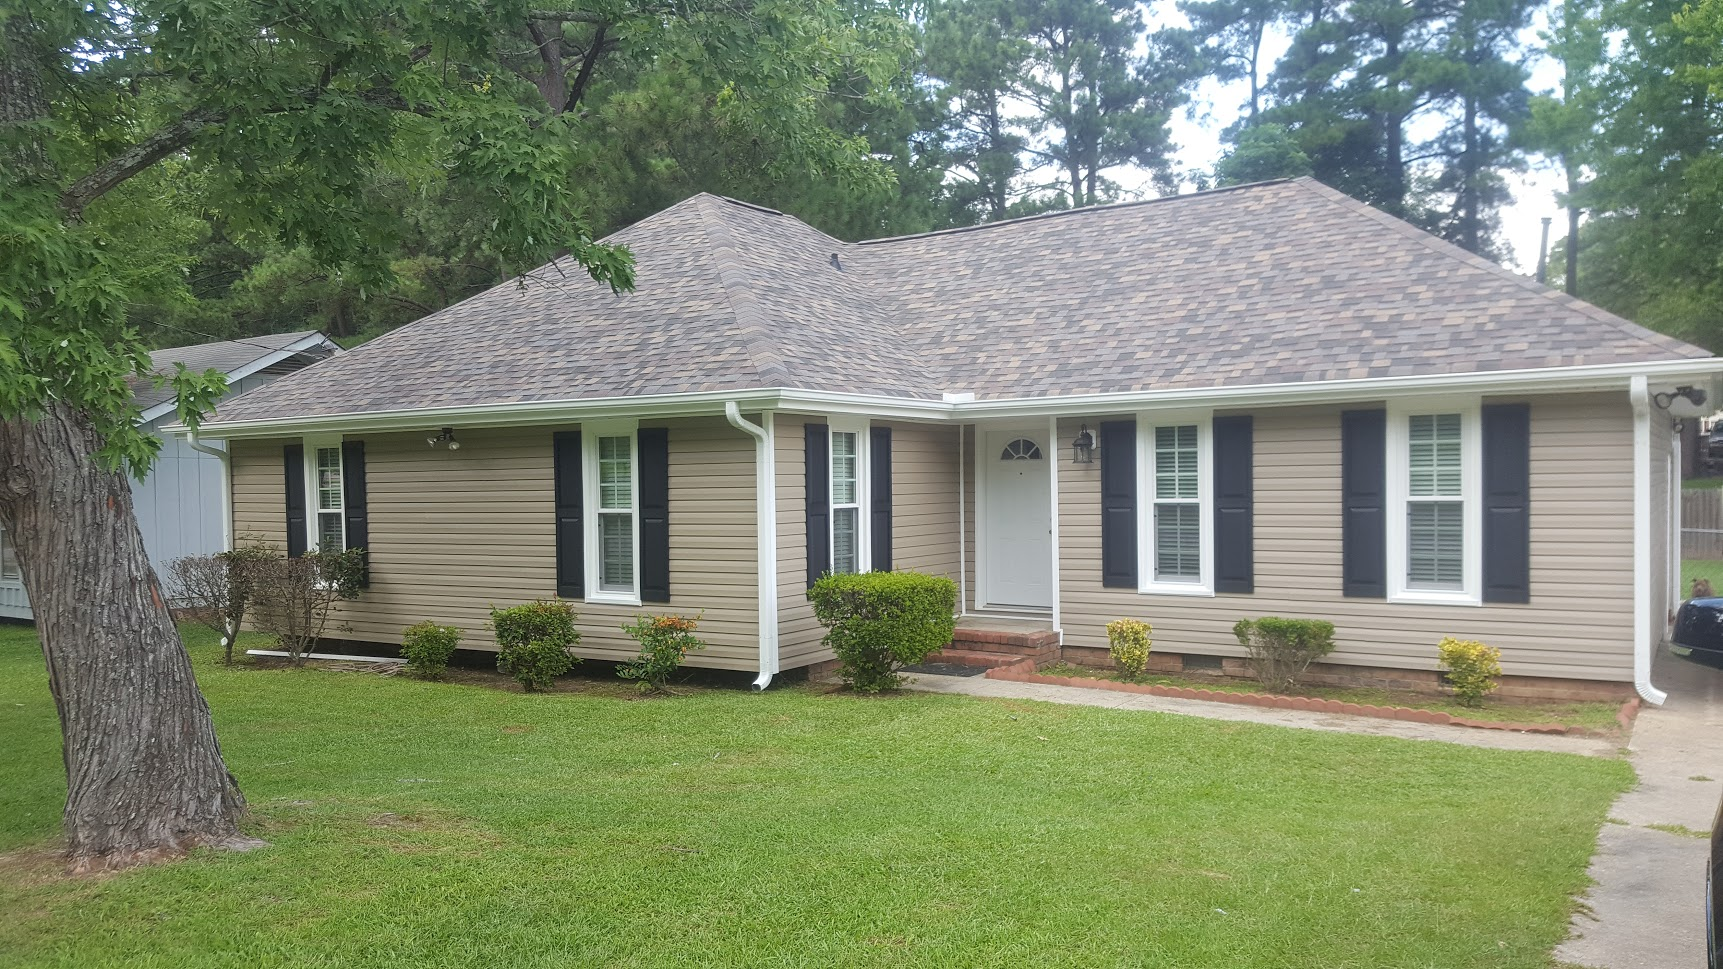 Exterior Home Solutions In Fayetteville Nc 910 425 2